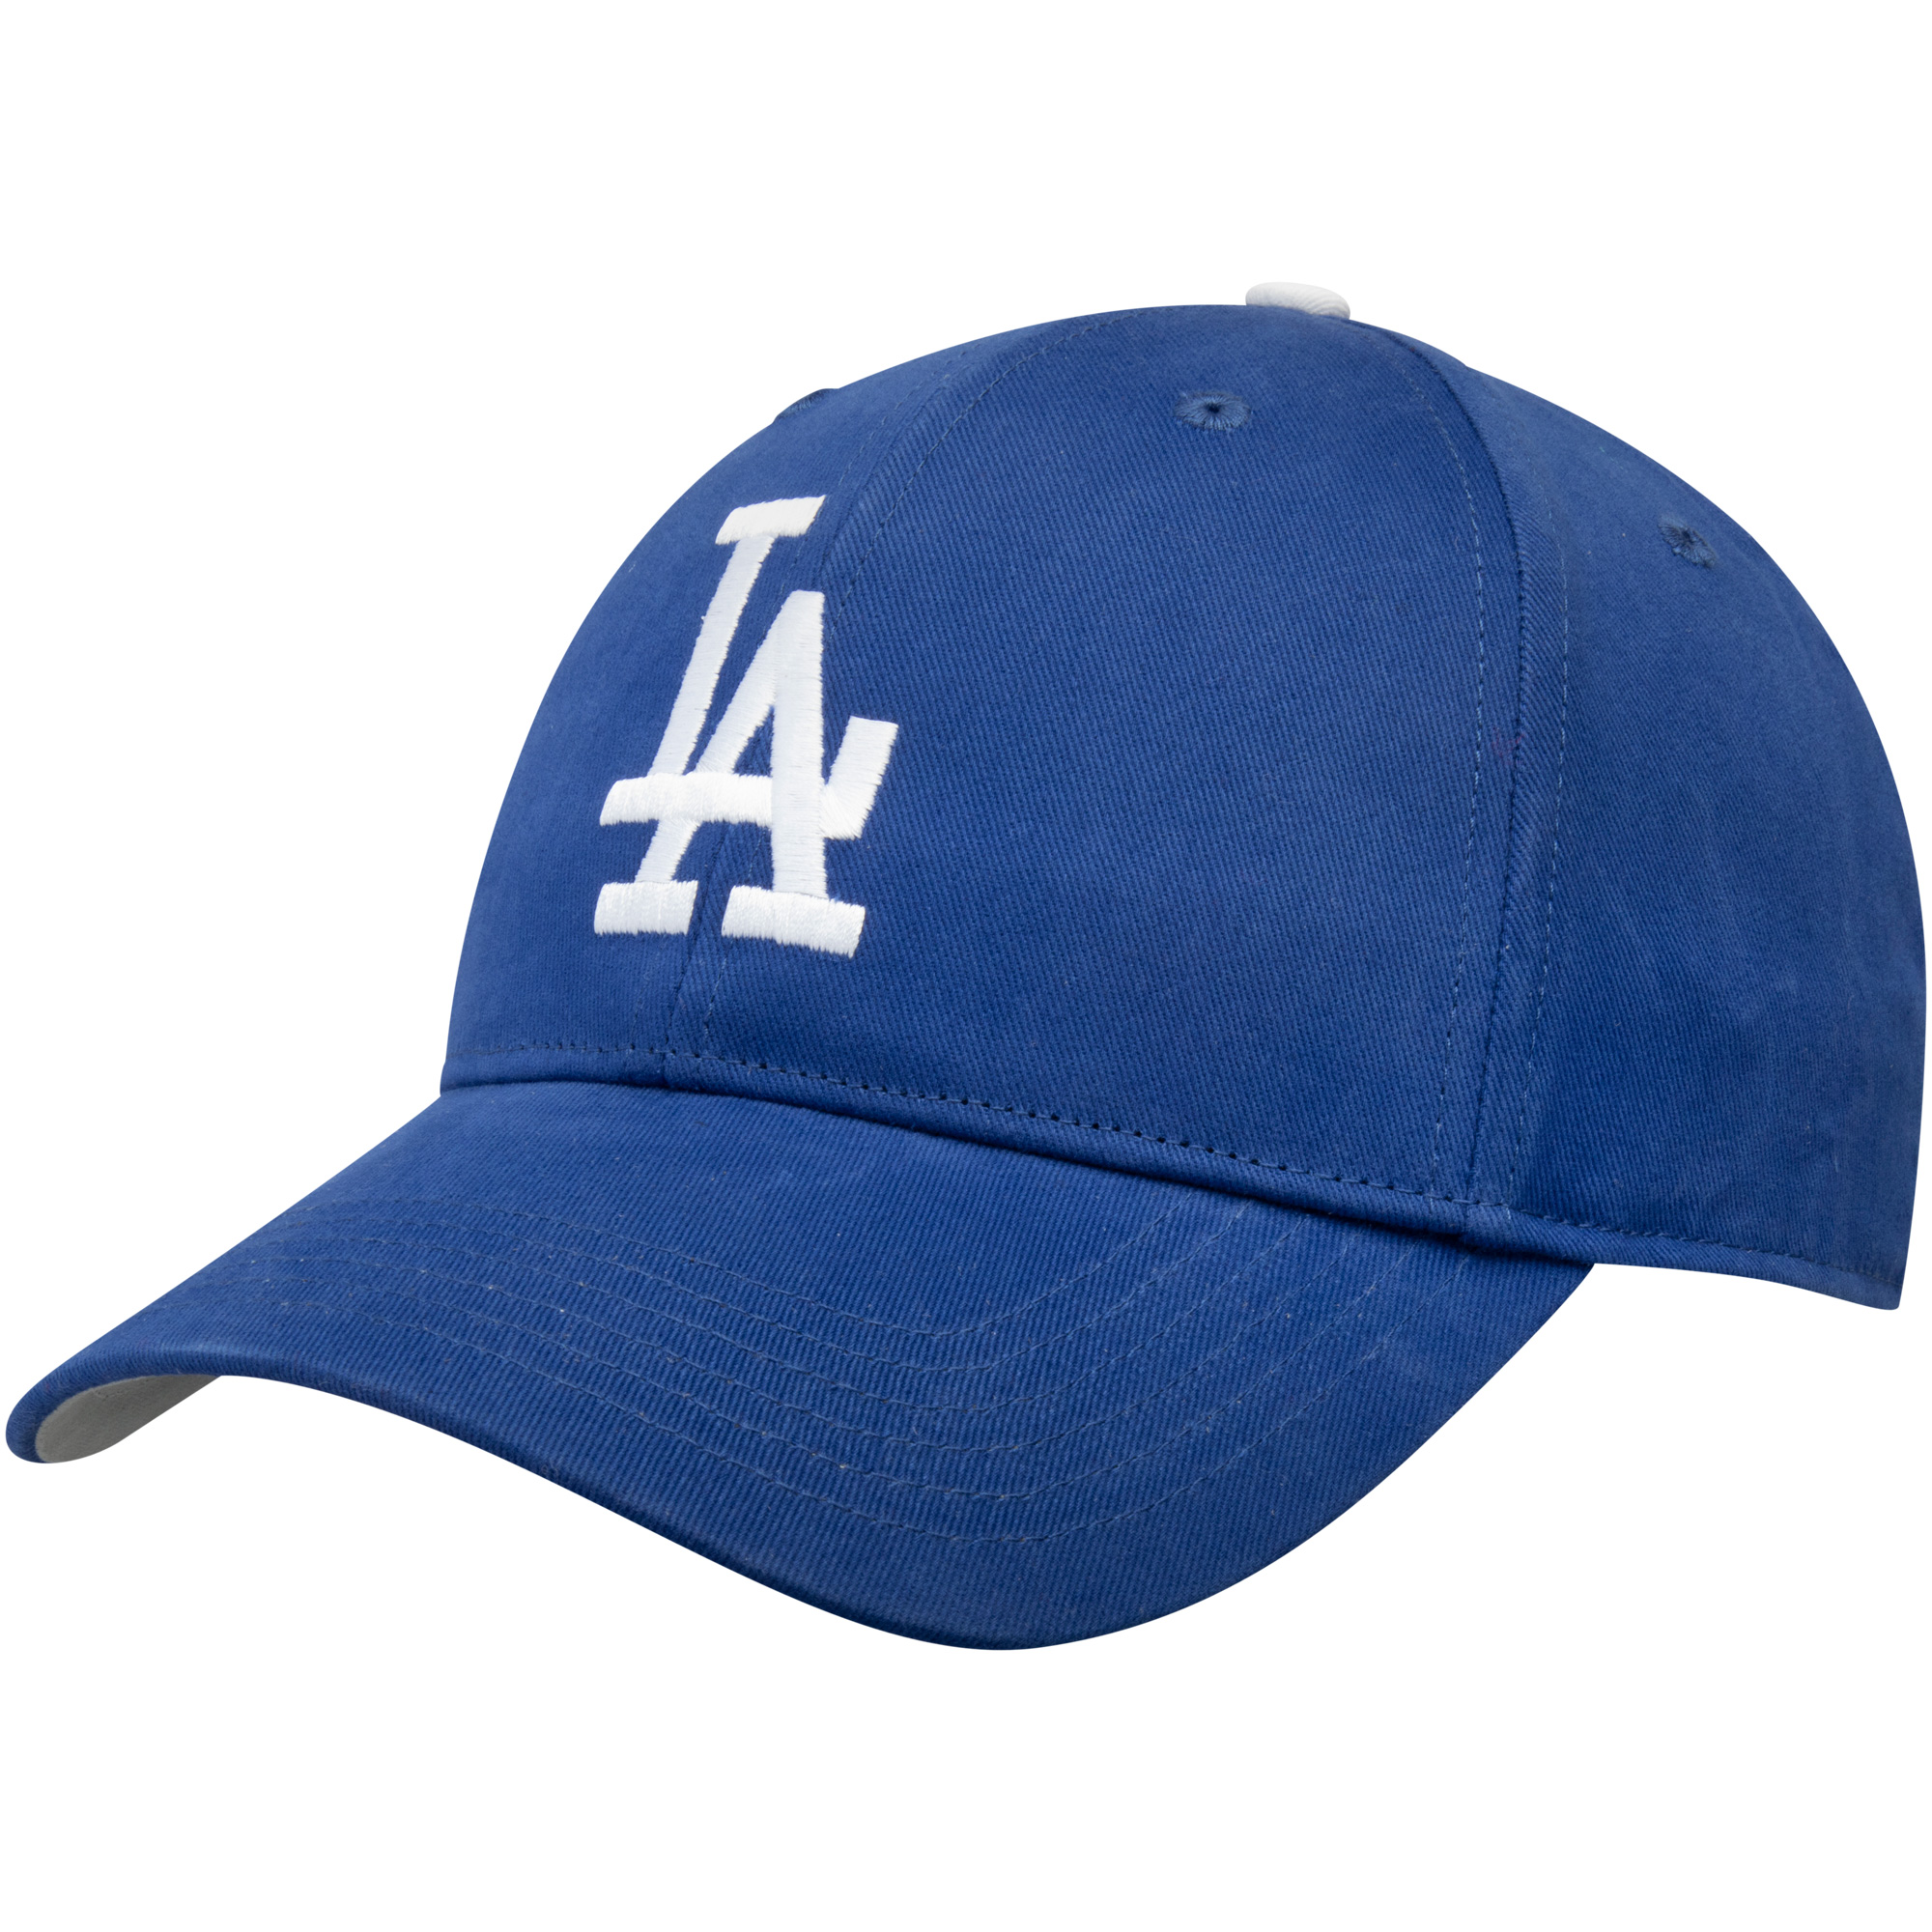 Los Angeles Dodgers '47 Youth Basic Adjustable Hat - Royal - OSFA